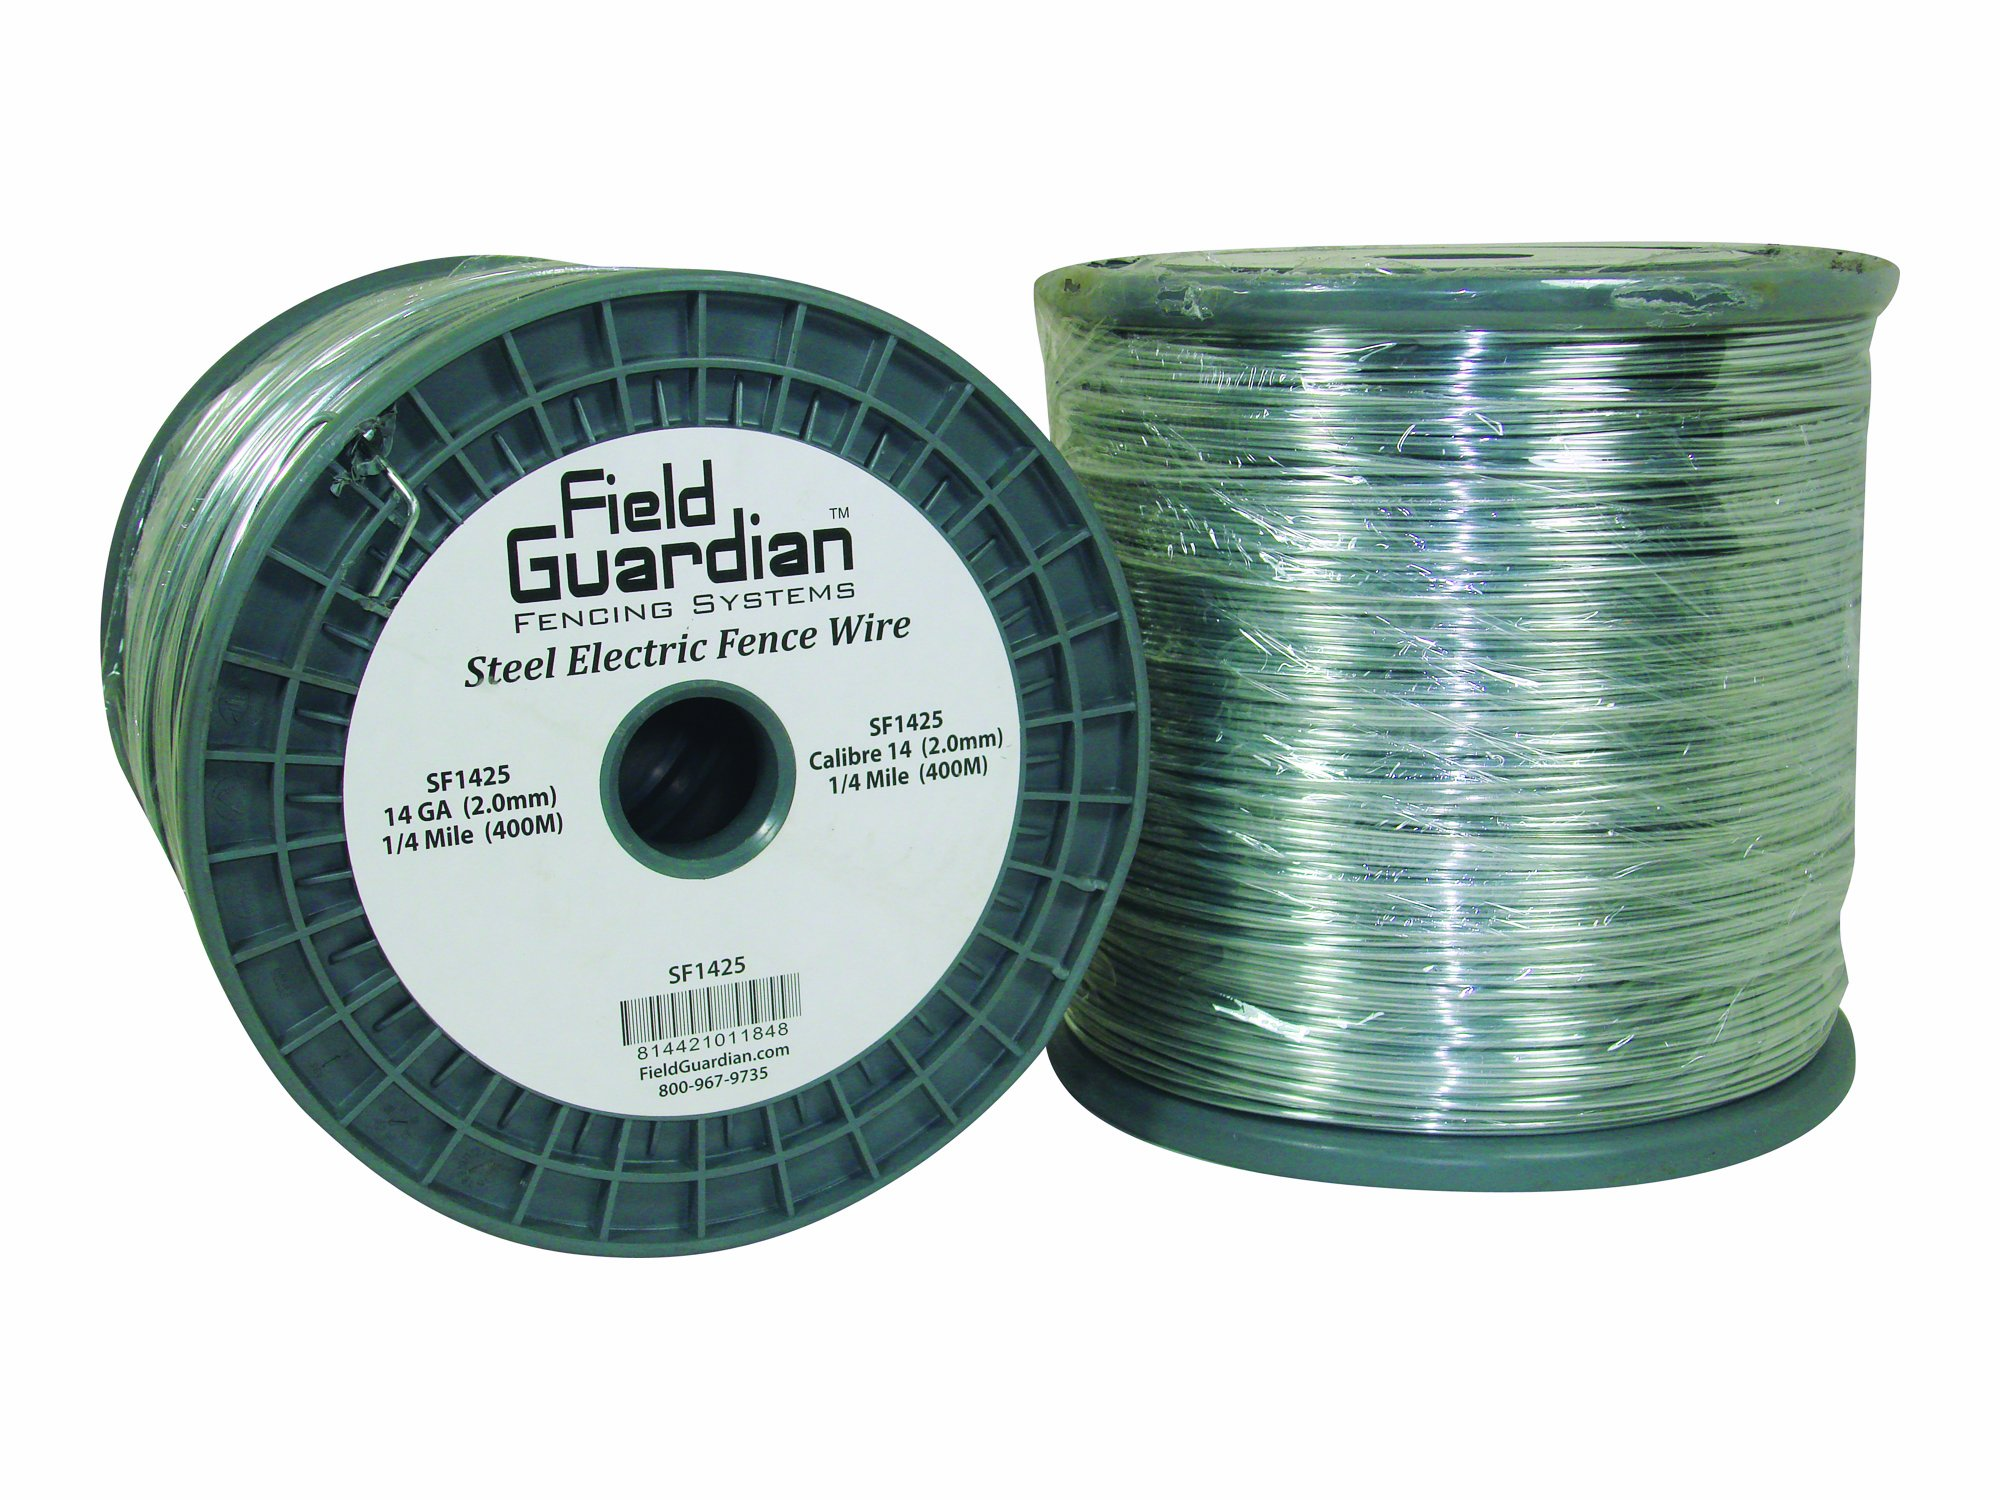 Field Guardian 14-Guage Galvanized Steel Wire, 1/4 Miles